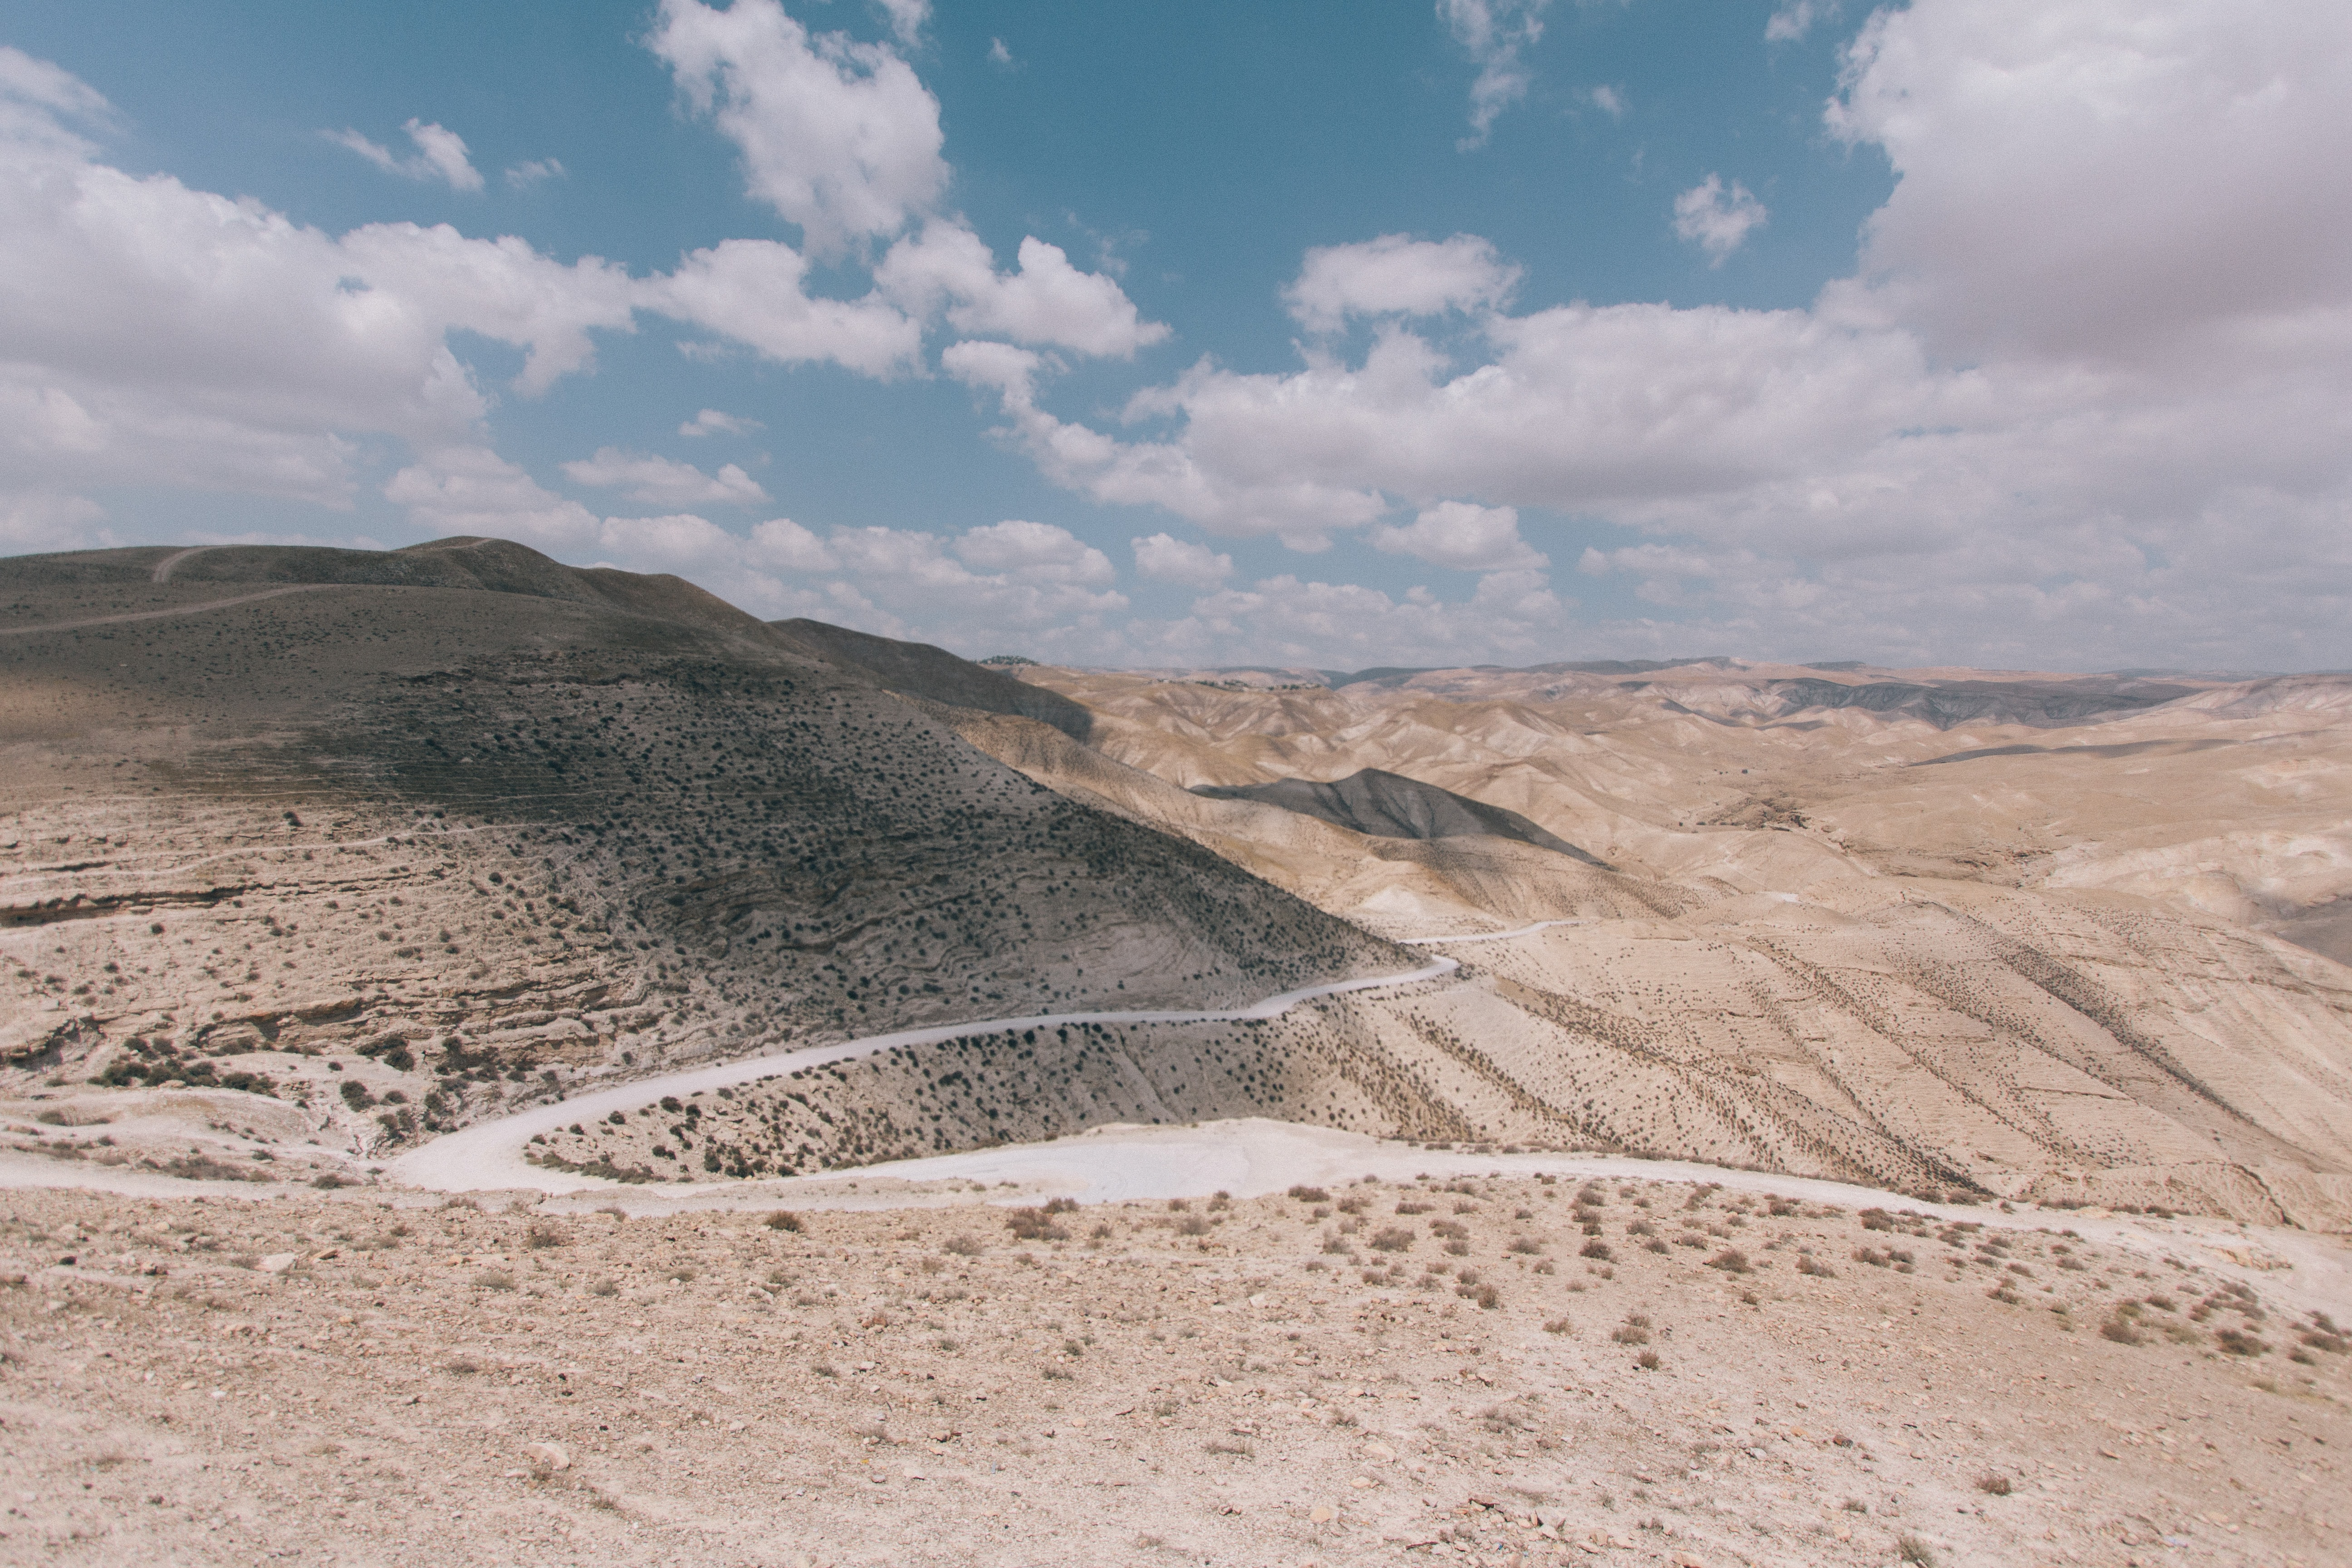 A winding desert road in the mountains in Arad